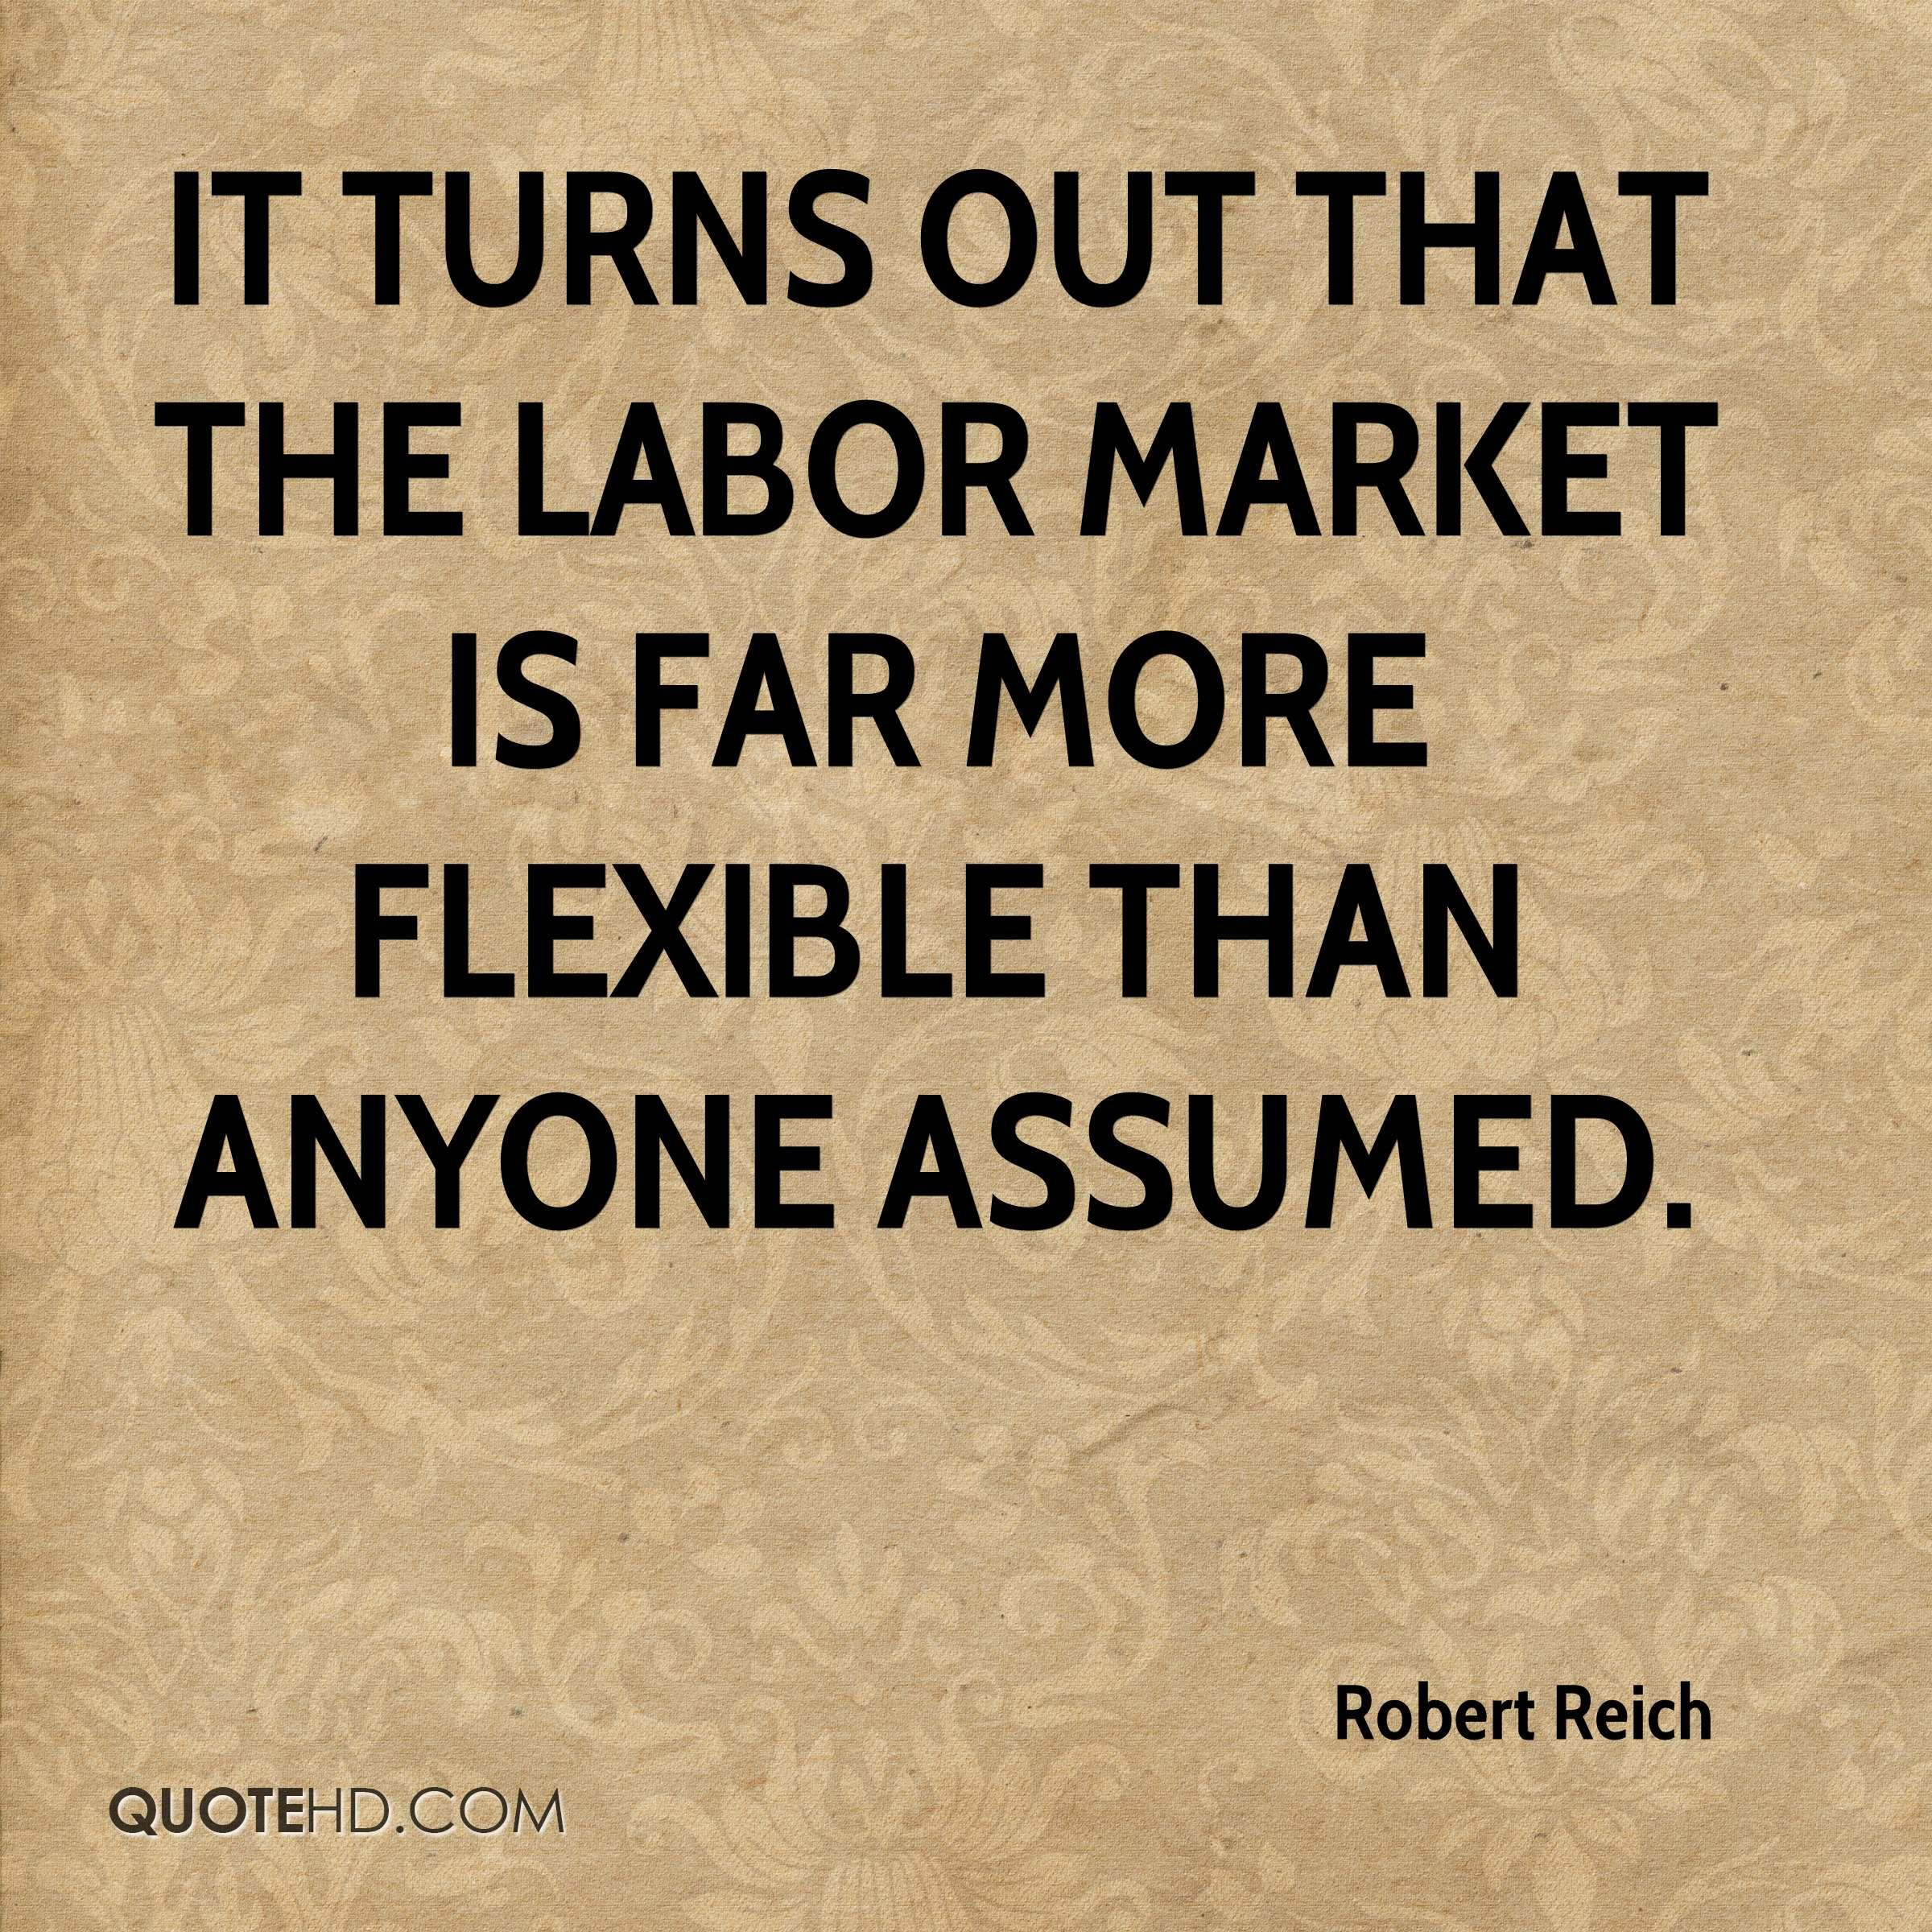 It turns out that the labor market is far more flexible than anyone assumed.